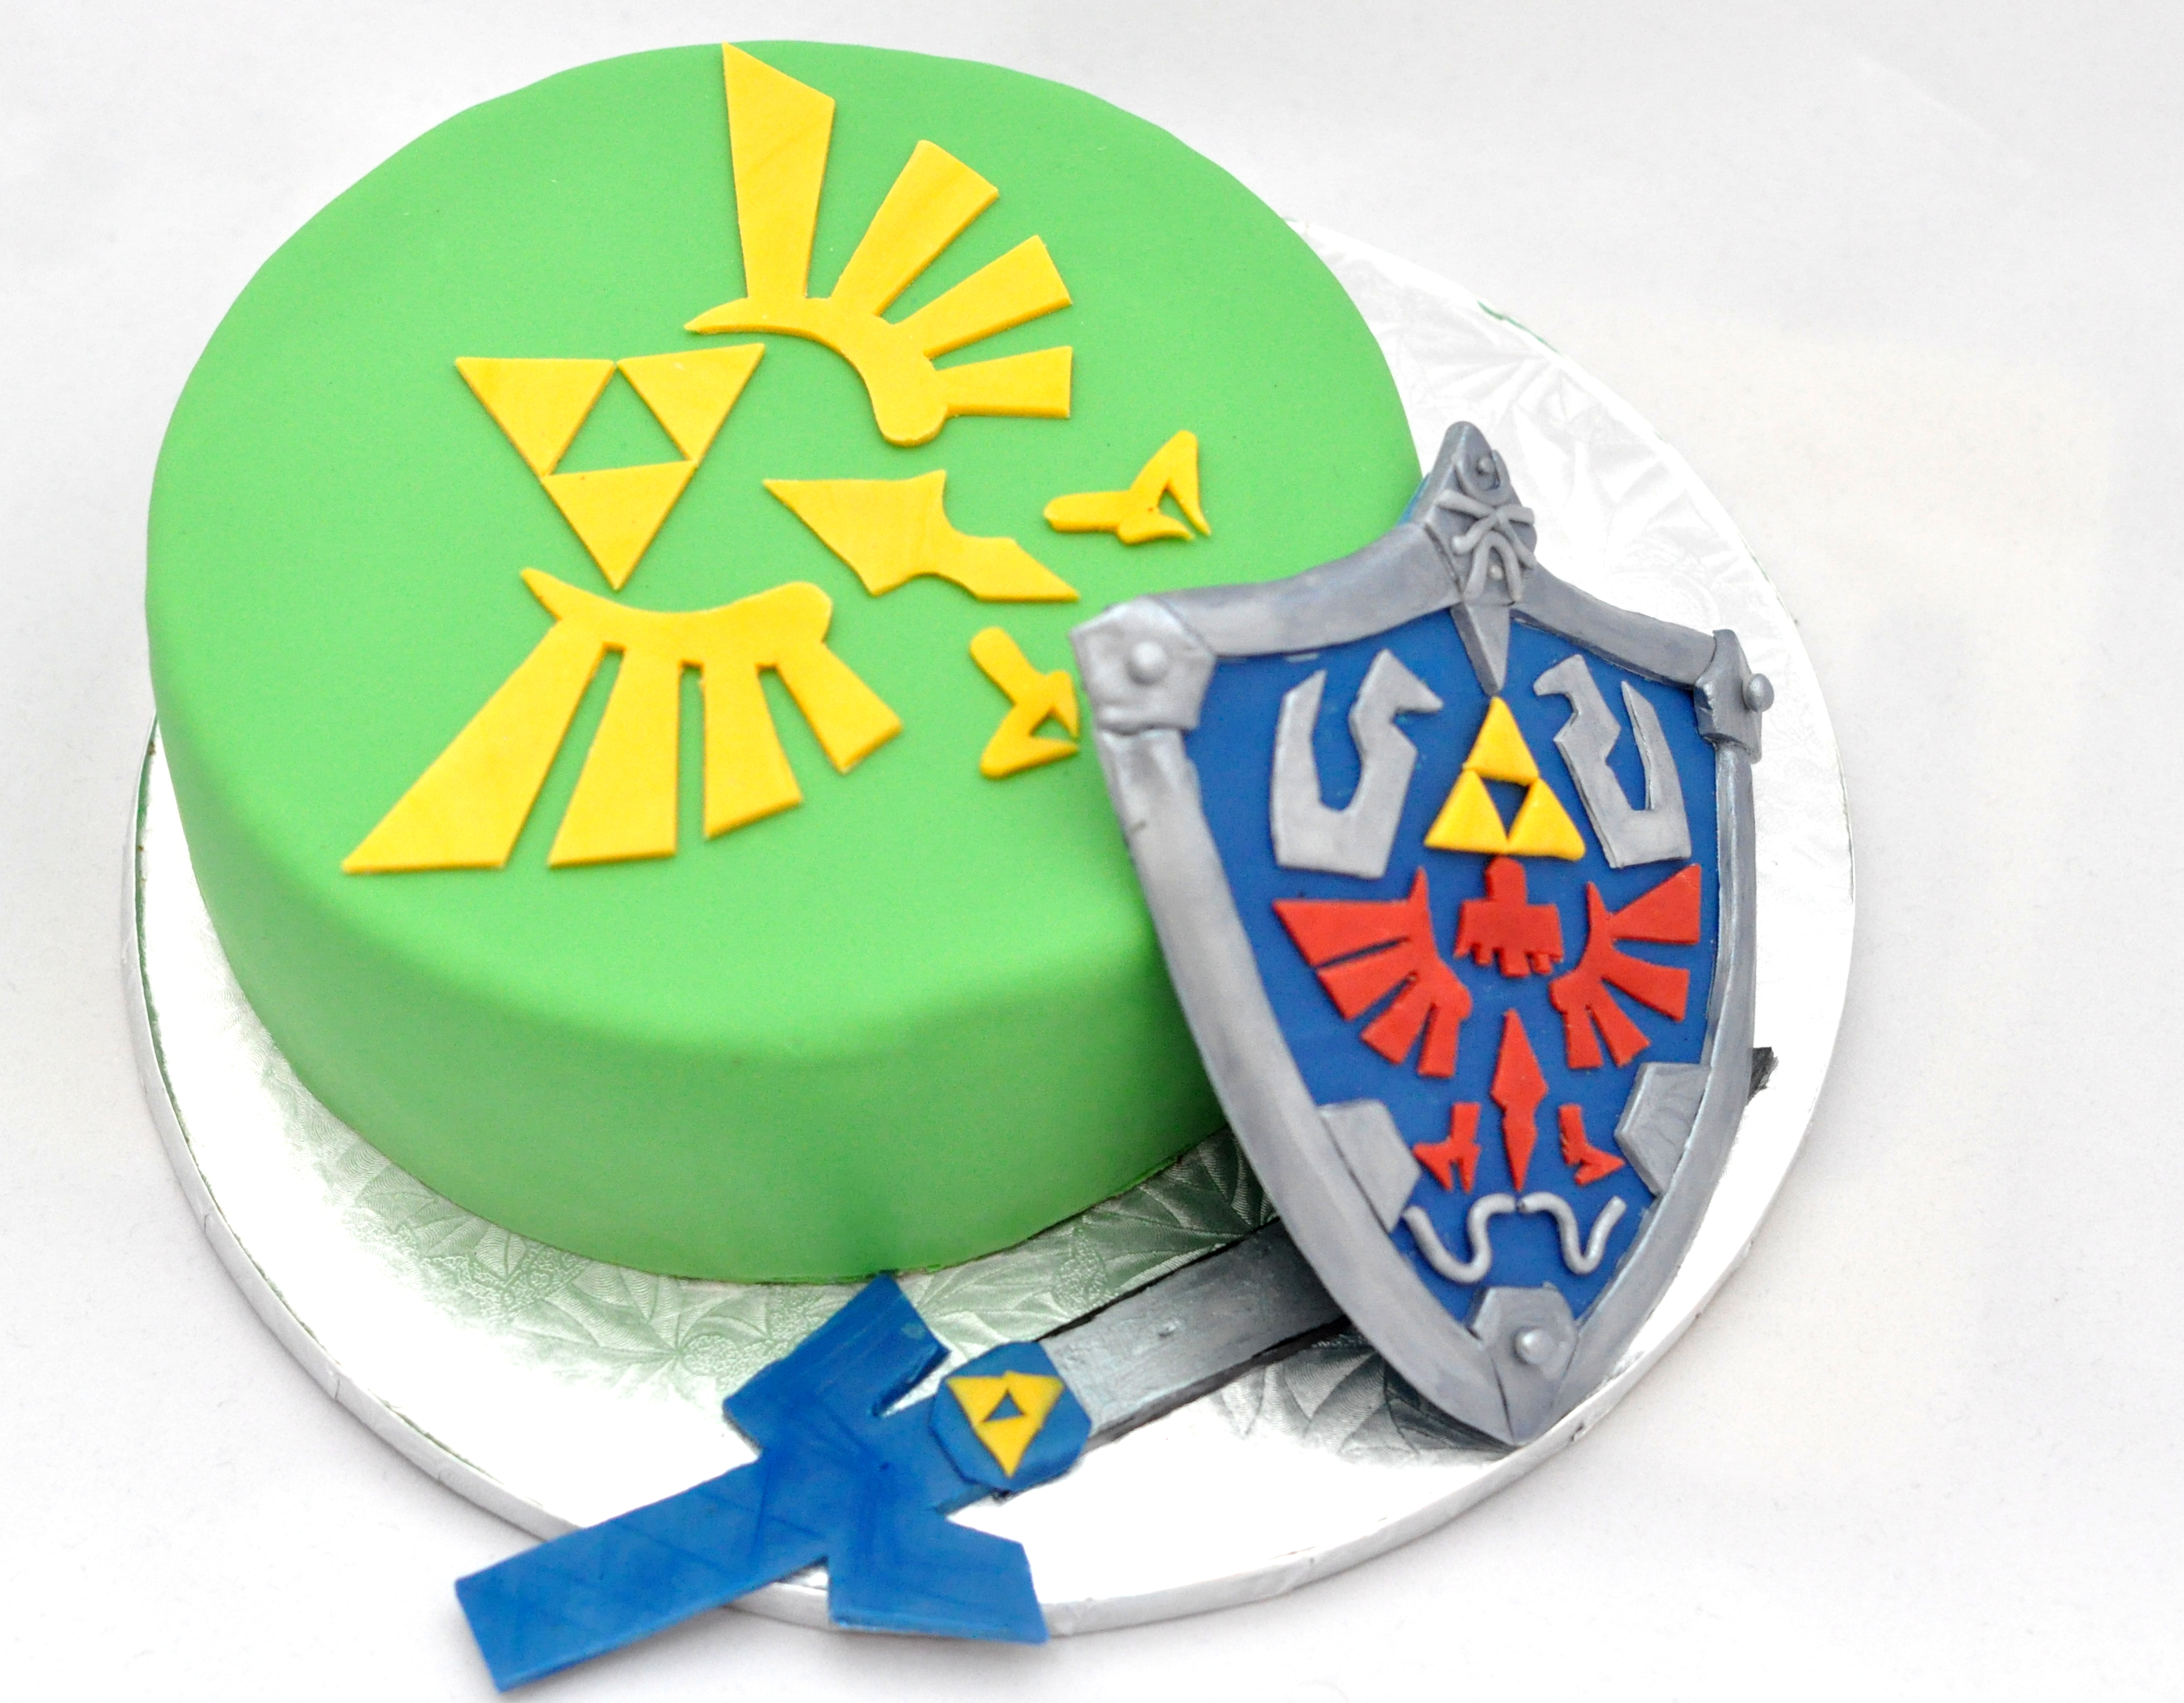 'Legend of Zelda' birthday cake by Bake-o-holic